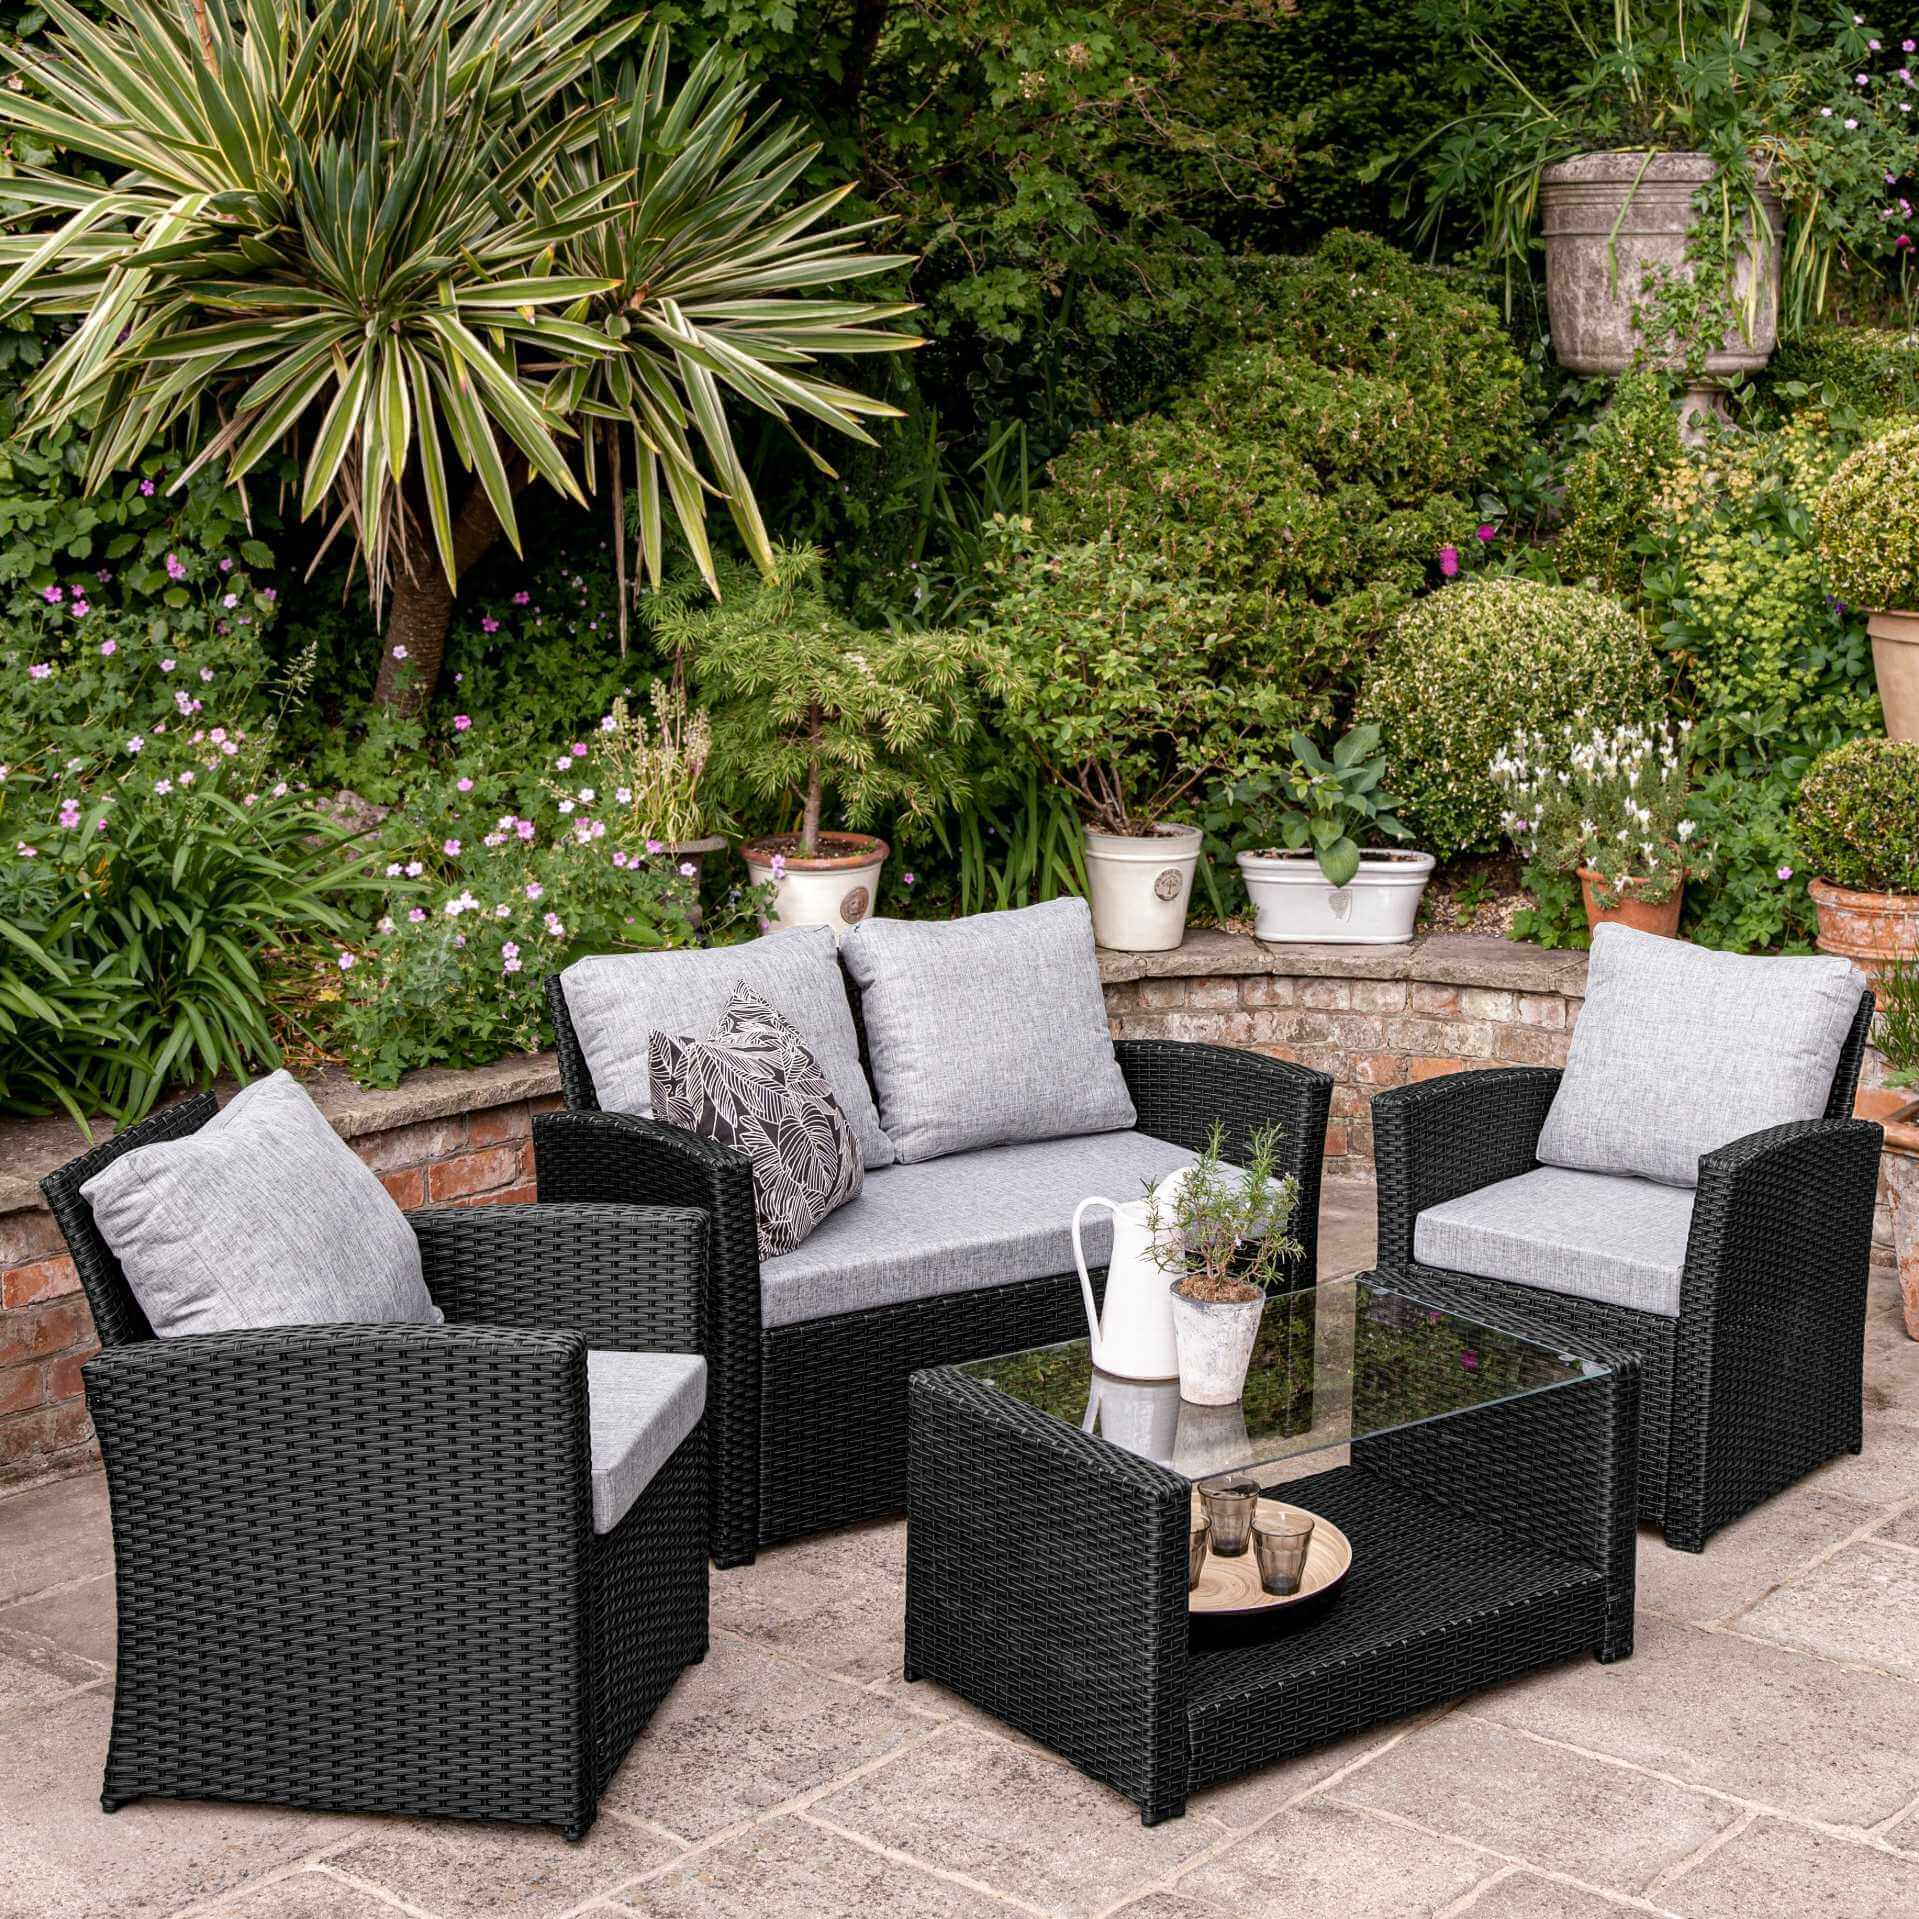 A Guide To Storing Your Garden Furniture This Winter